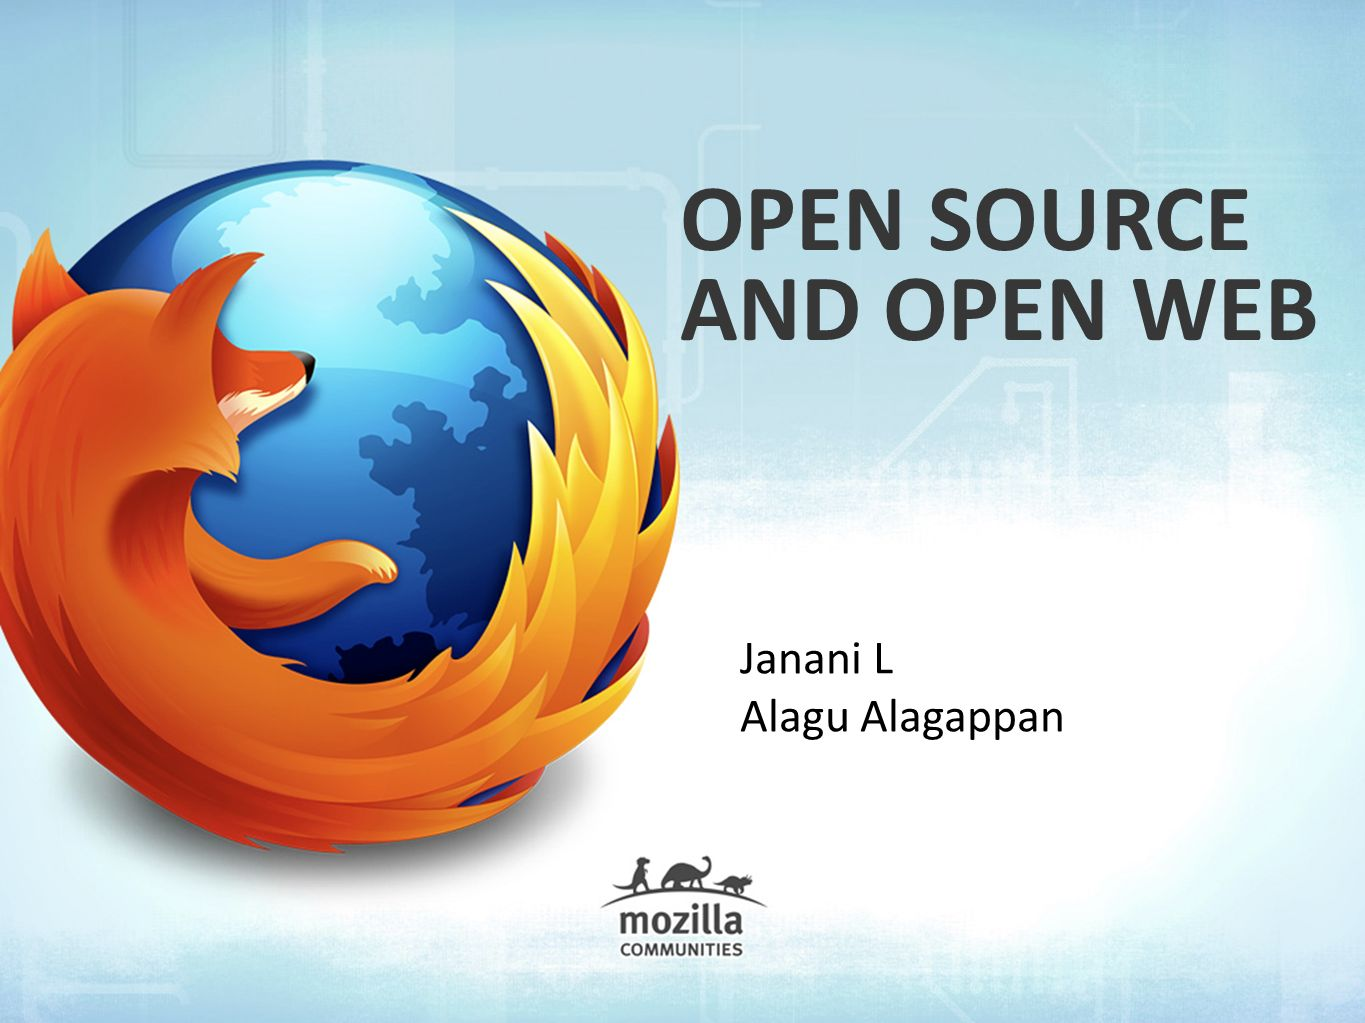 OPEN SOURCE AND OPEN WEB Janani L Alagu Alagappan